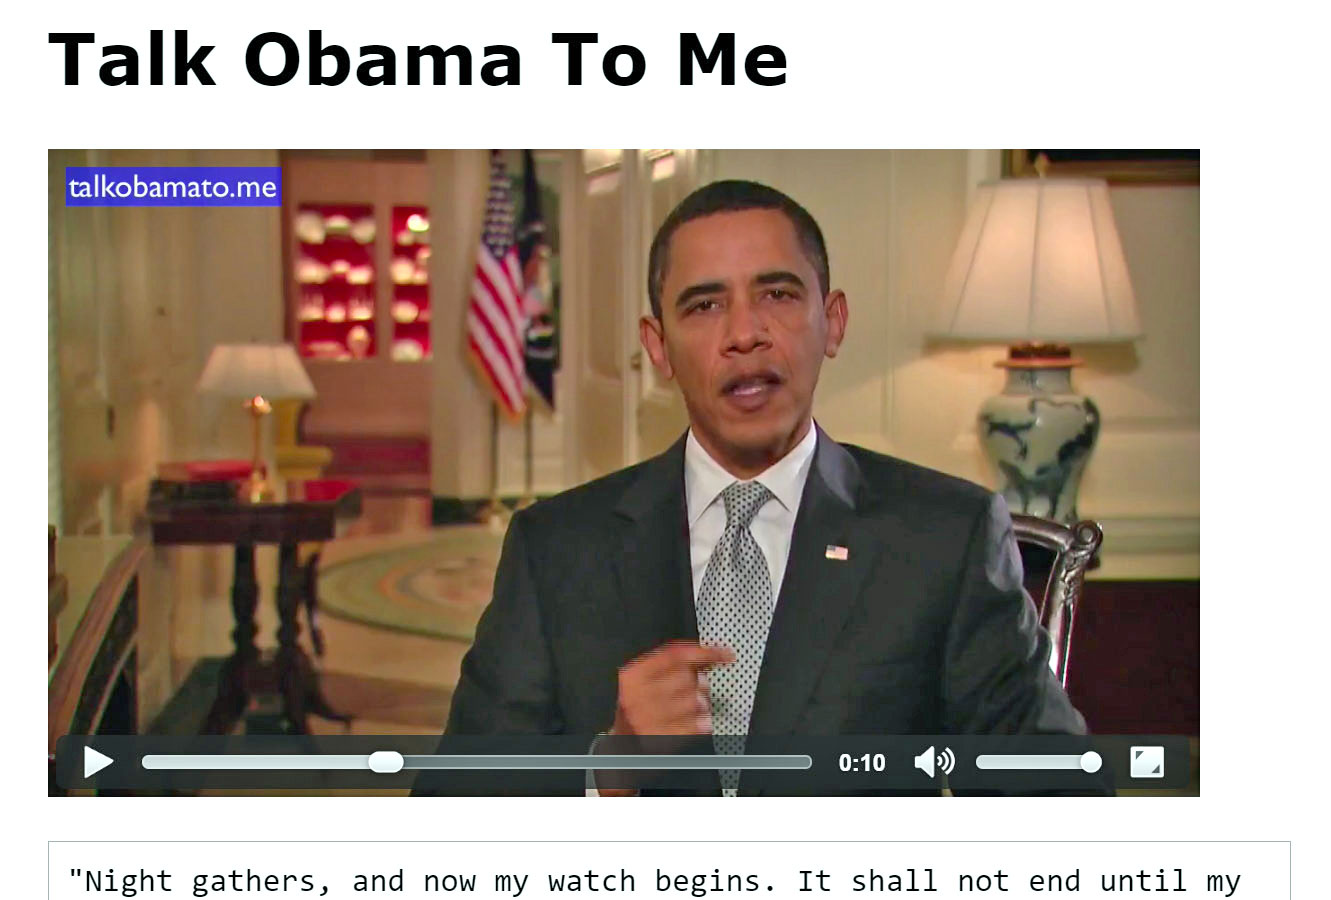 Put words in the Presidents mouth with Talk Obama To Me